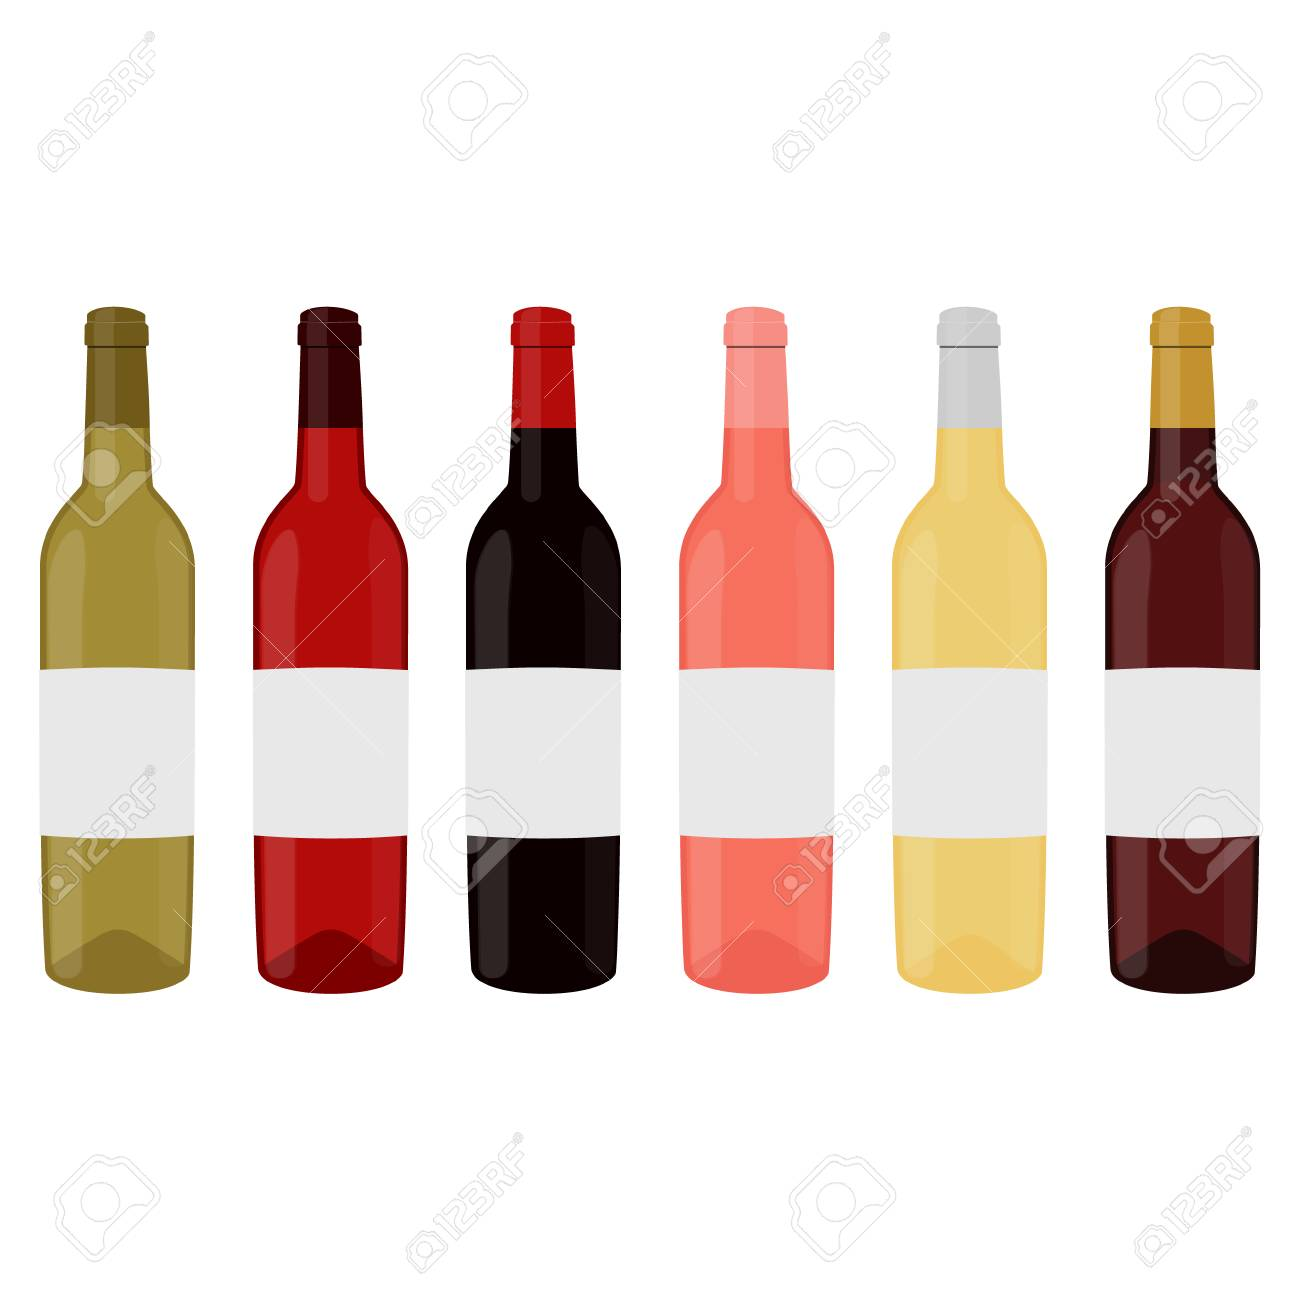 raster illustration set collection of wine bottles with red